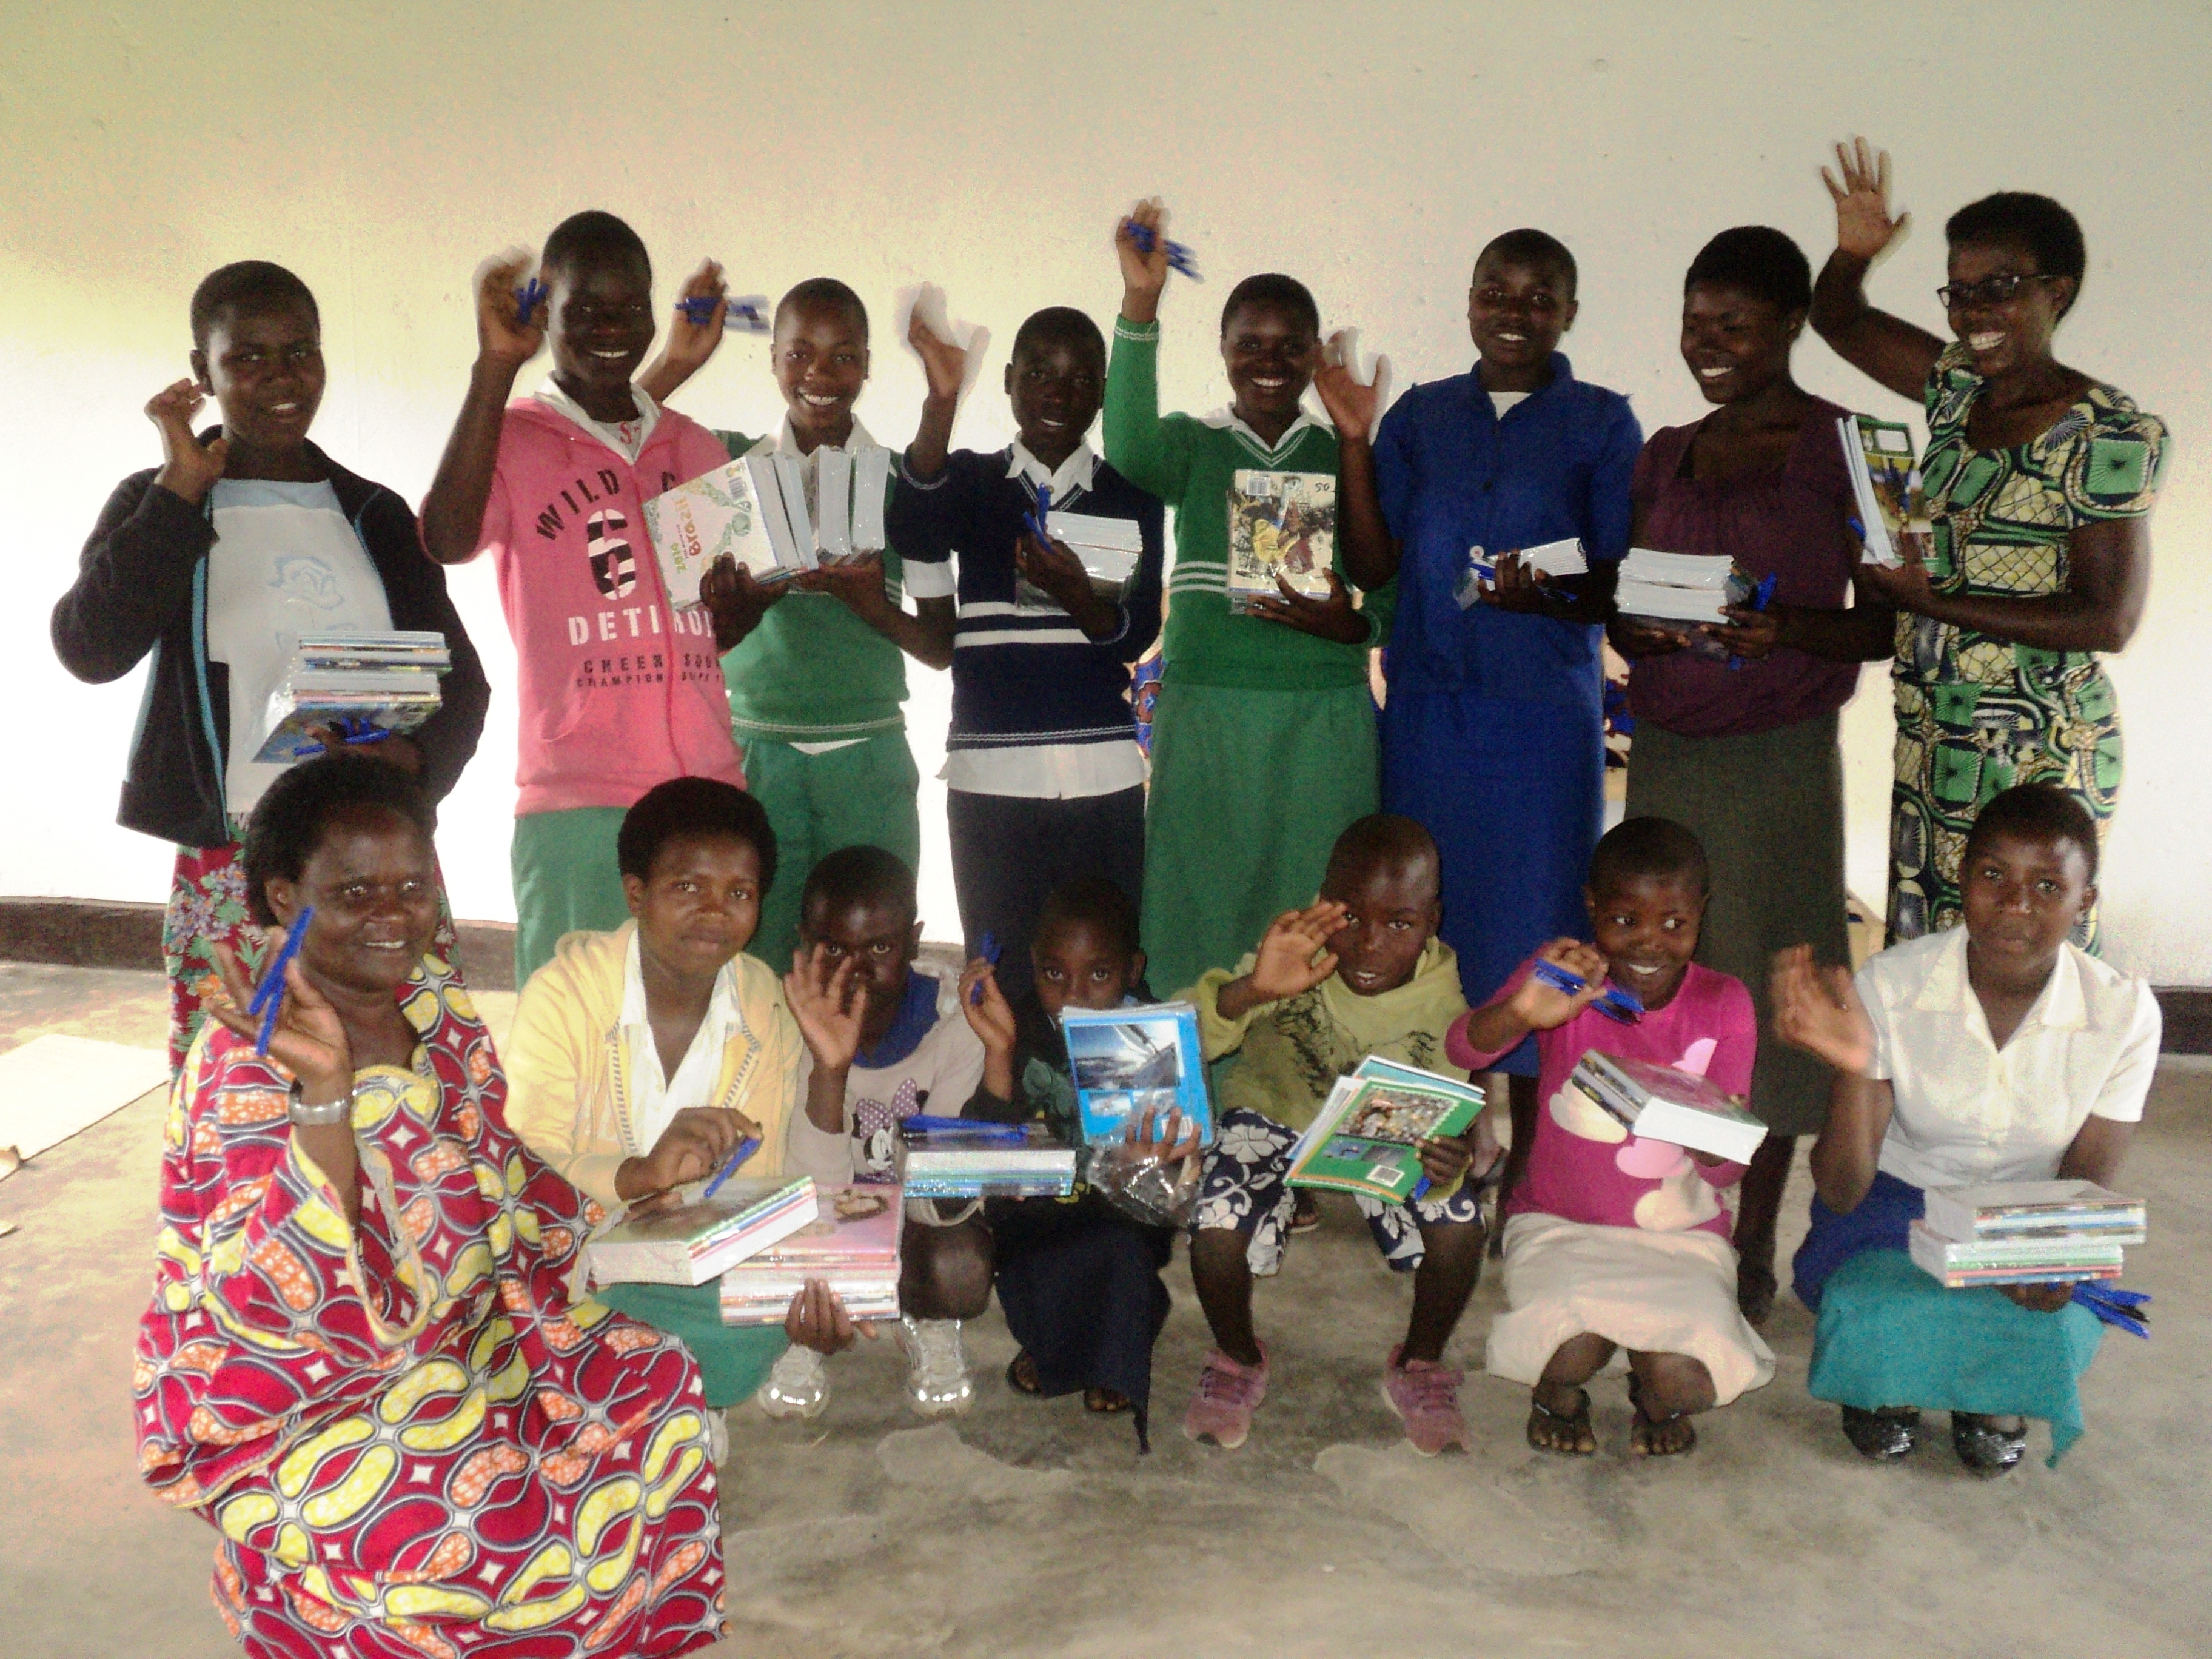 Thumbnail for the post titled: With Support SDB Grows Daily – Rwanda